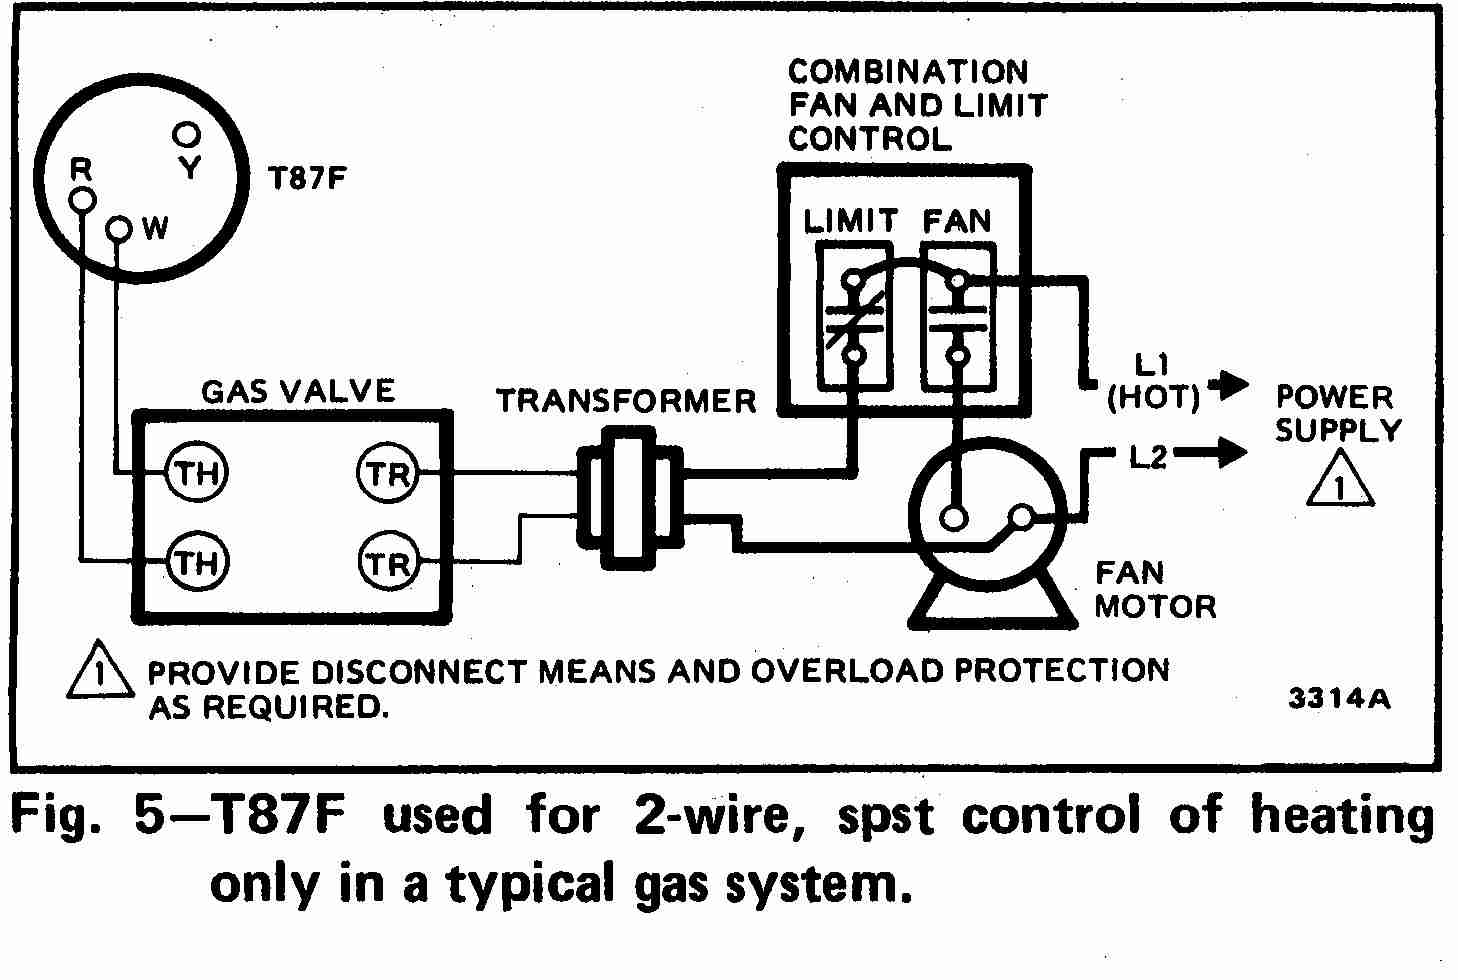 TT_T87F_0002_2Wg_DJF guide to wiring connections for room thermostats Dayton Thermostats Manuals at n-0.co